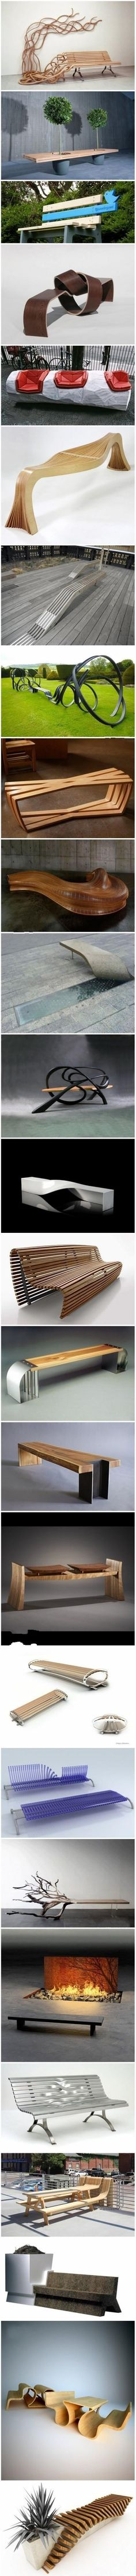 26 public benches design - organic form creates the dynamic movement of hard object